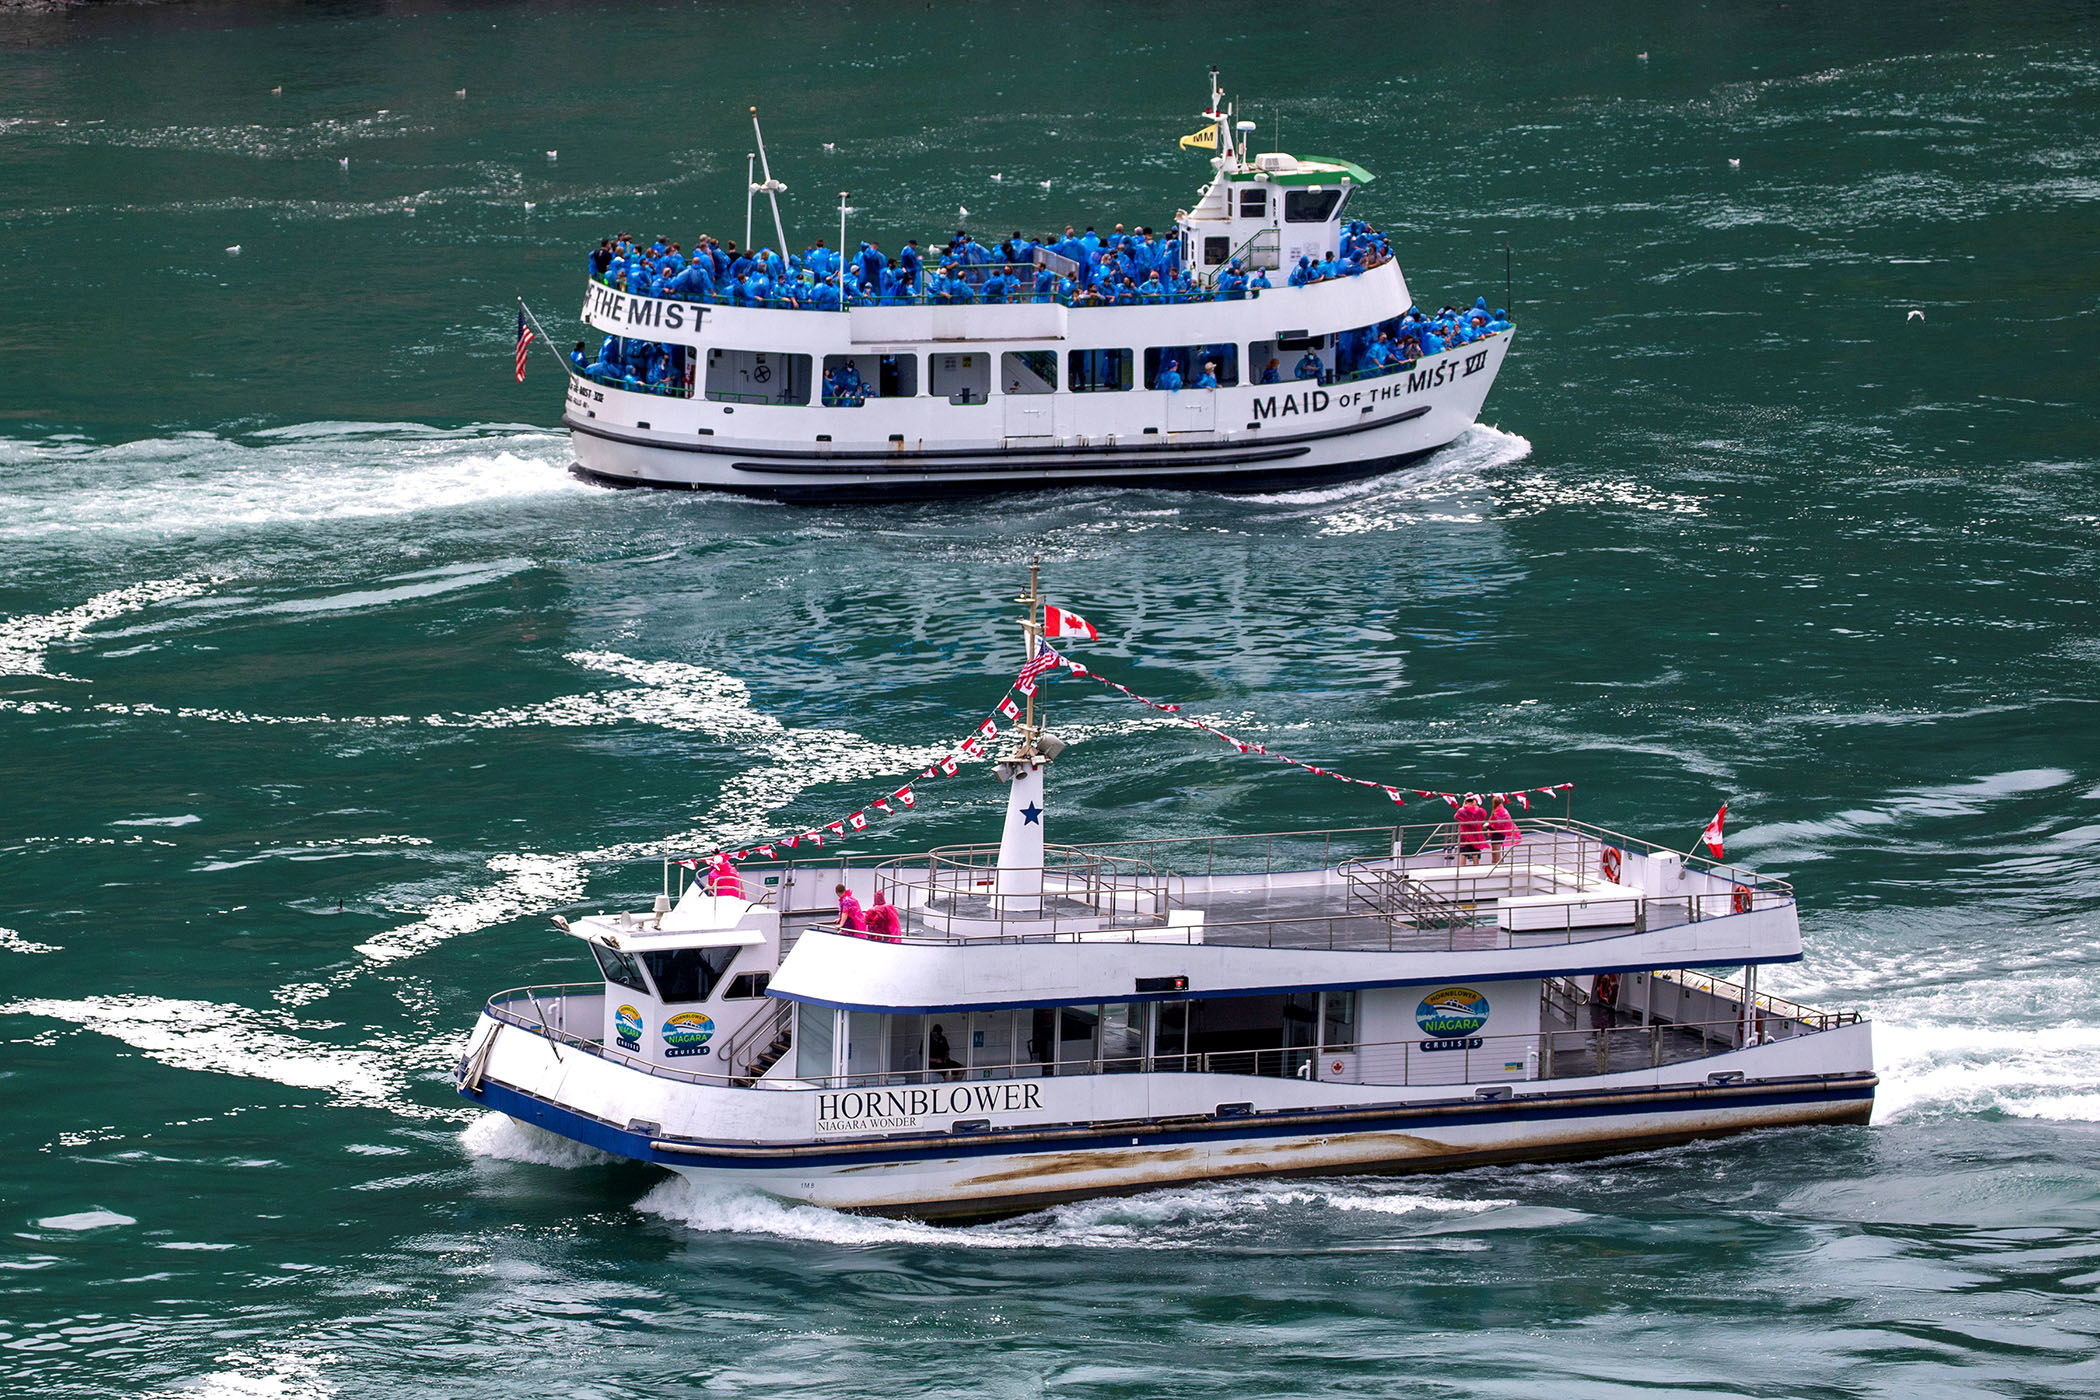 "One boat in the foreground, named Hornblower, carries six passengers dressed in bright red raincoats; in the background, a tourist boat named ""Maid of the Mist"" carries several dozen passengers in blue raincoats"